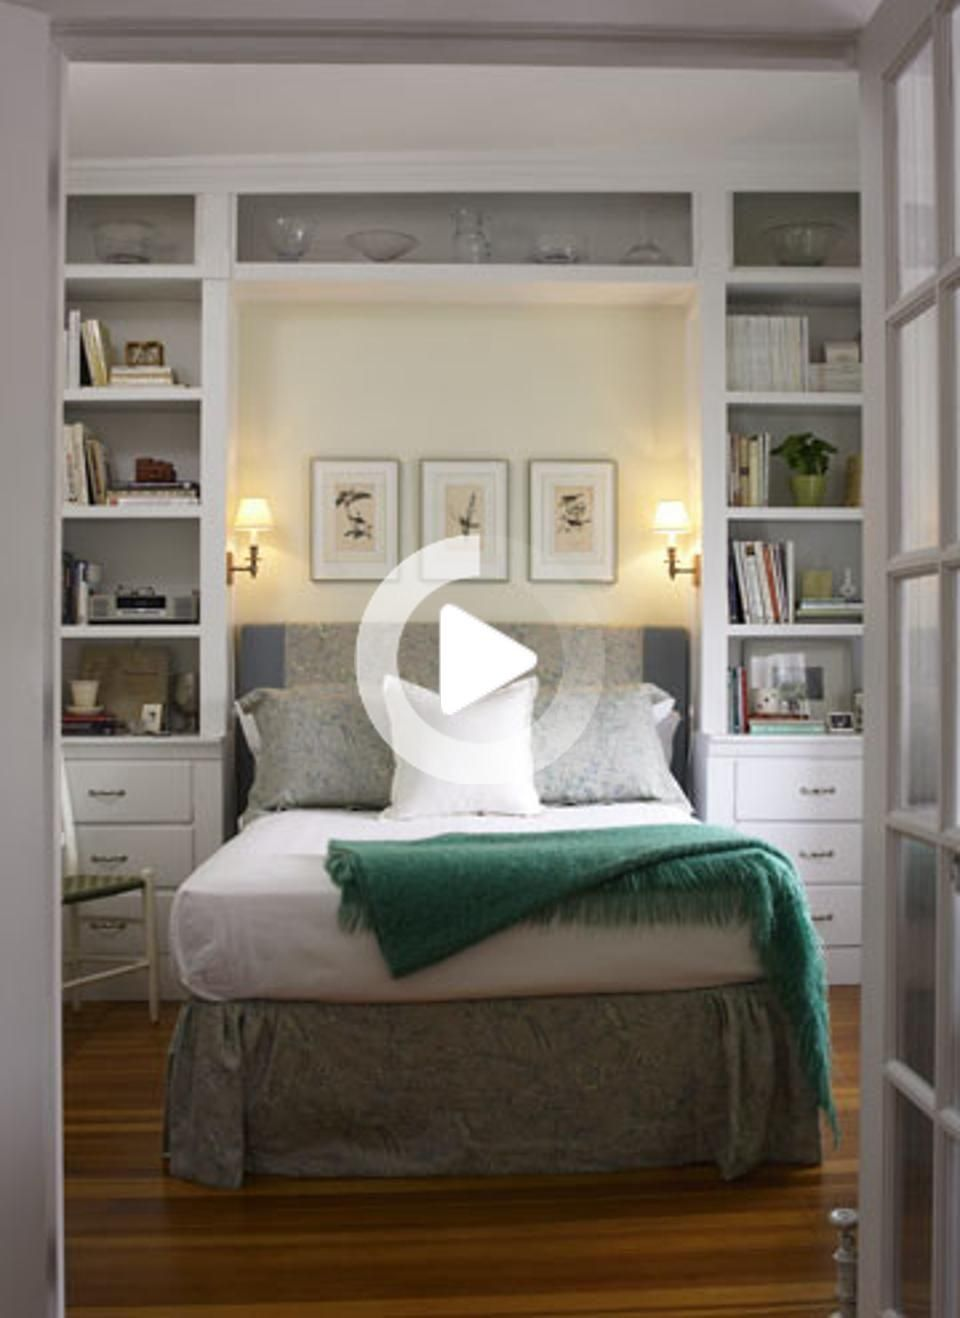 10x10 Room Design: Small Master Bedroom Storage Ideas Is Particular Design